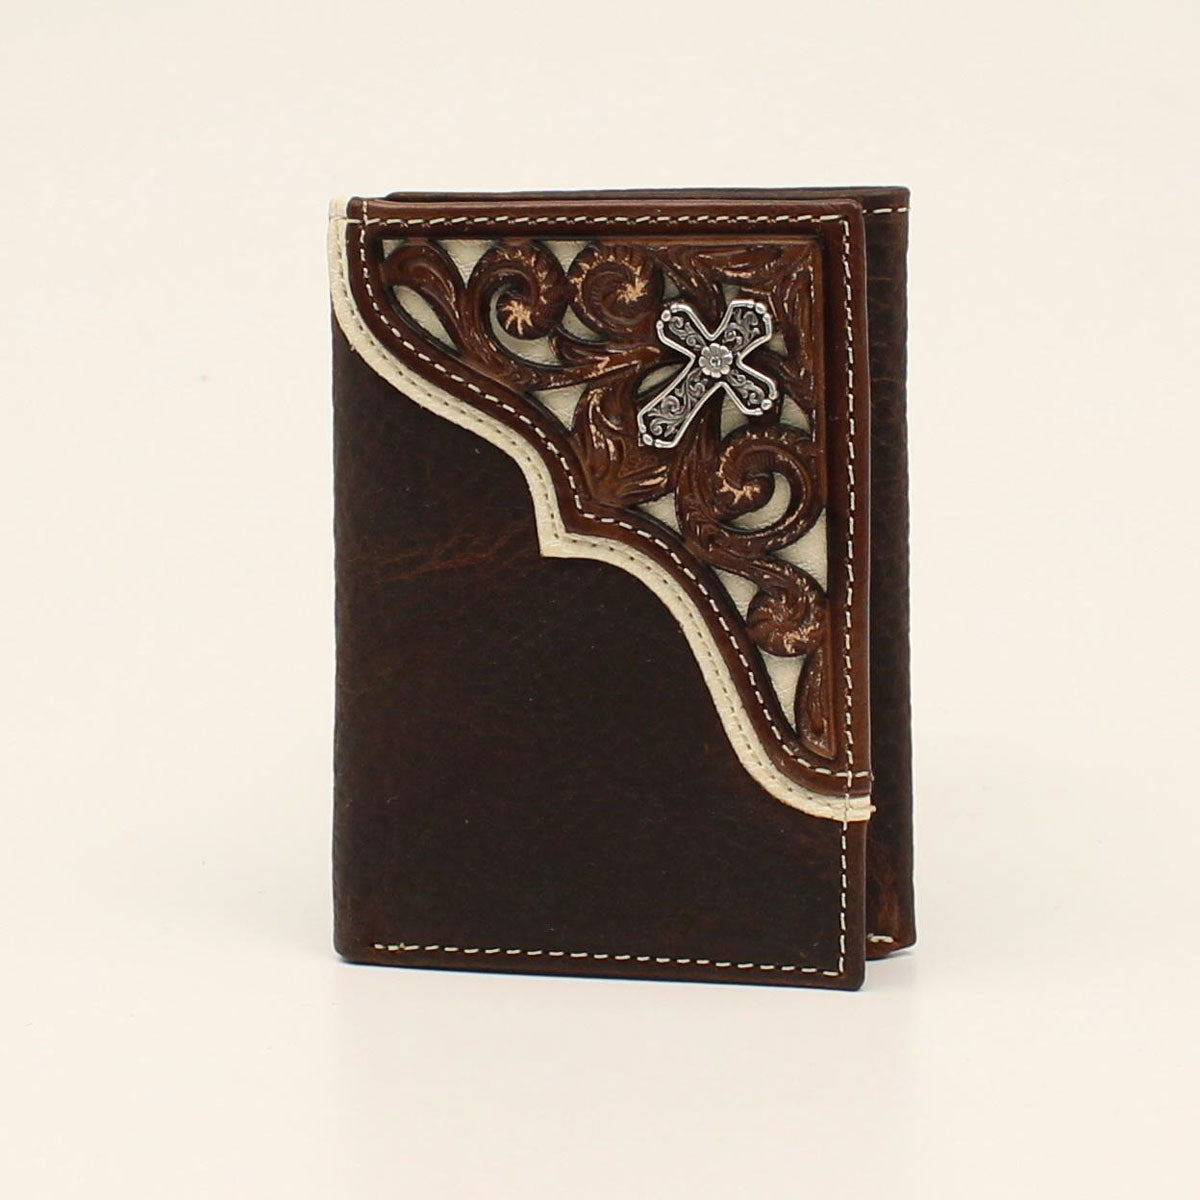 Nocona Trifold Cross Concho Pierced Corner Overlay Leather Wallet